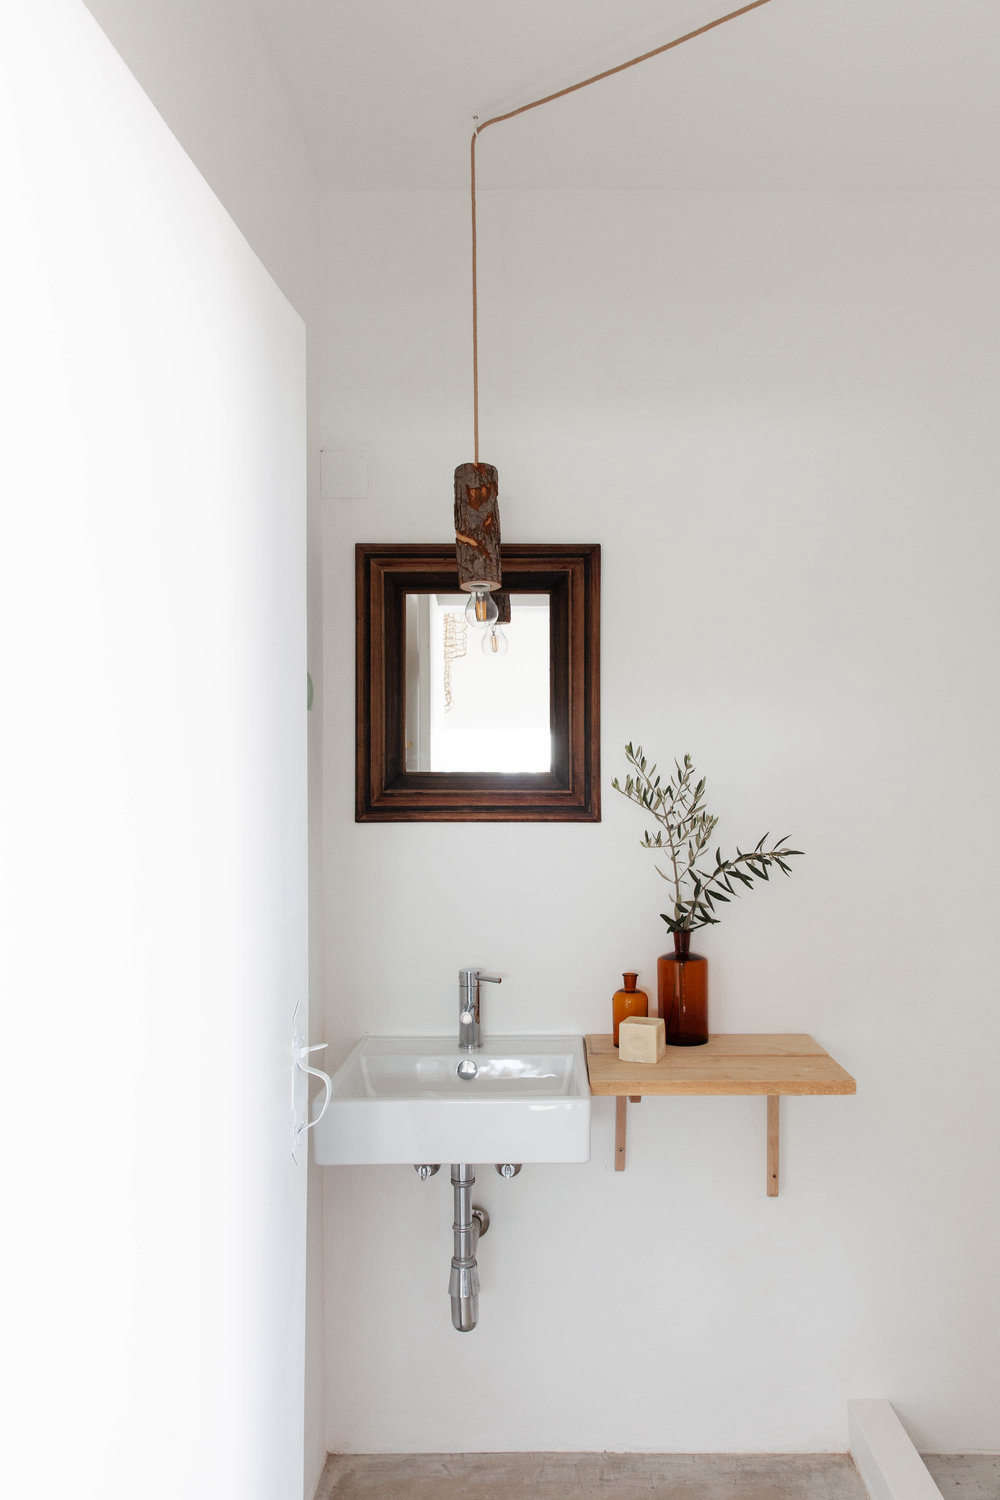 A wood ledge extends sink-side space in one of the baths. Note the rustic pendant light, too.